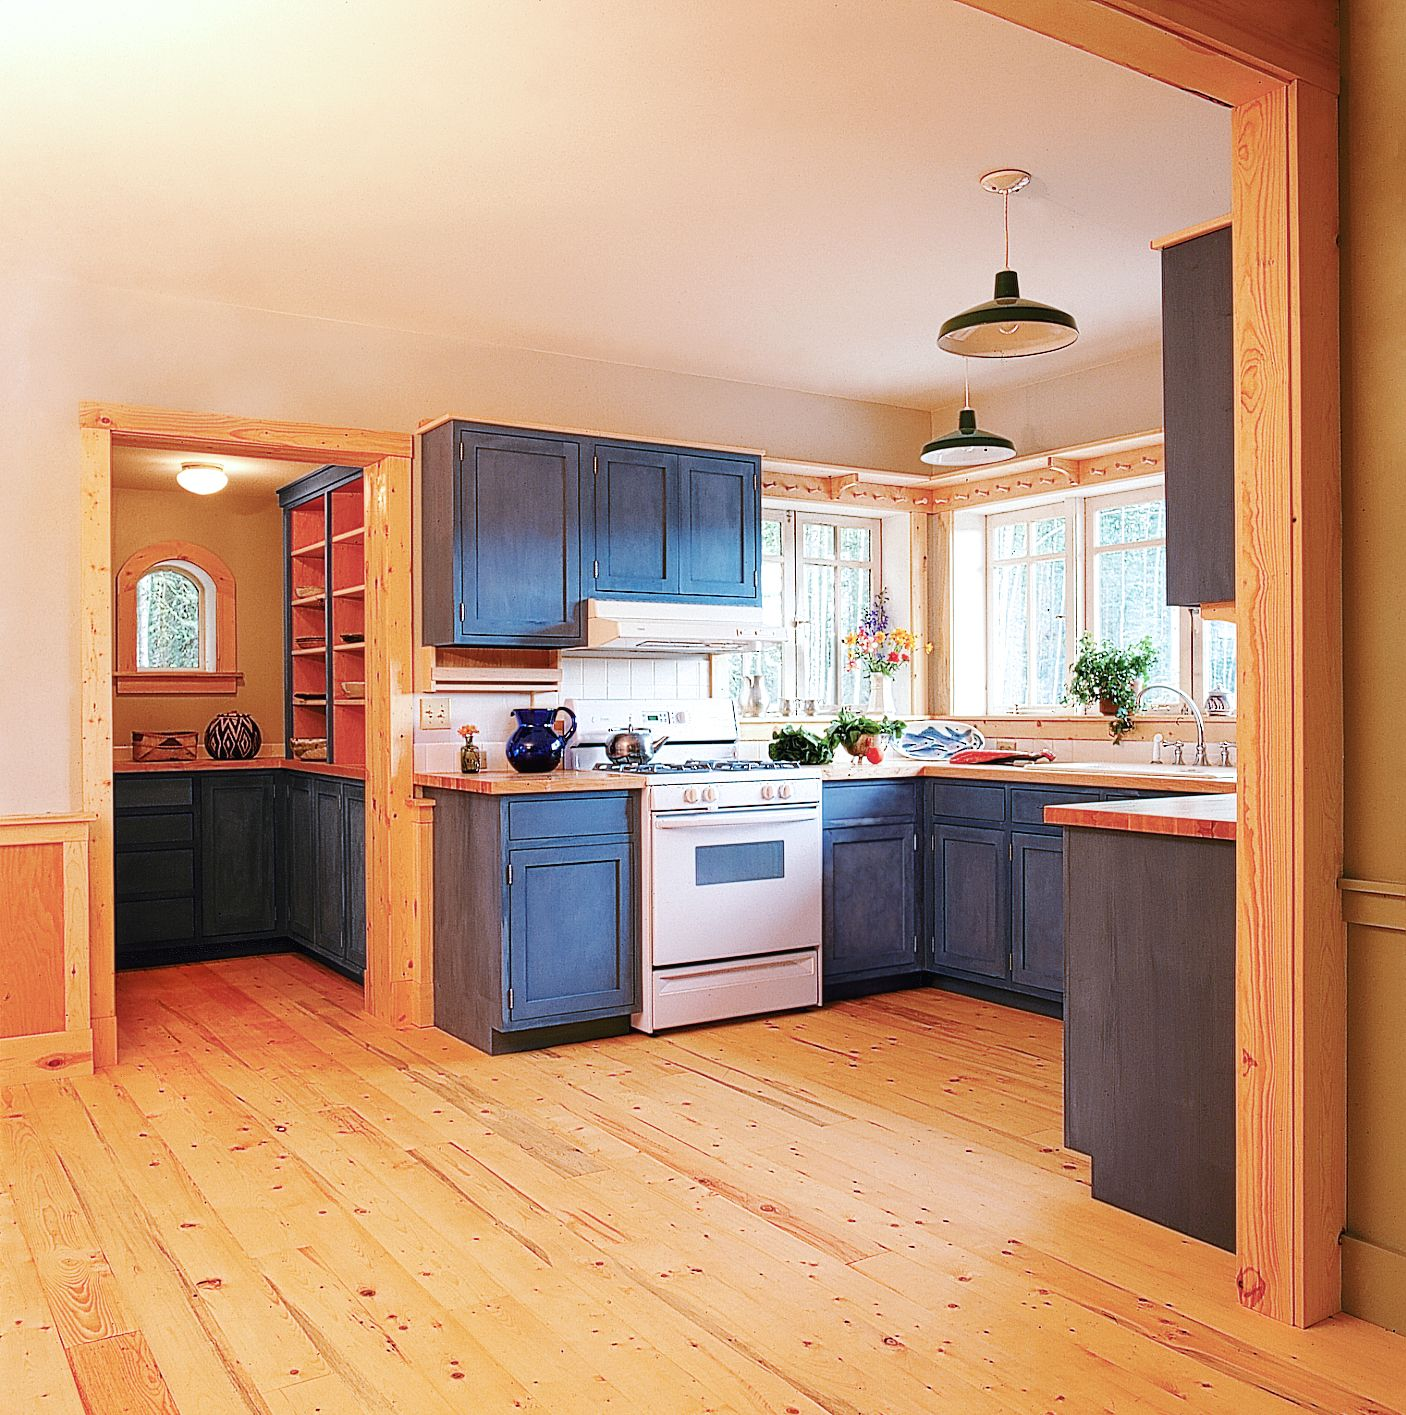 House on the meadow blue milk paint cabinetry and salvaged spruce flooring